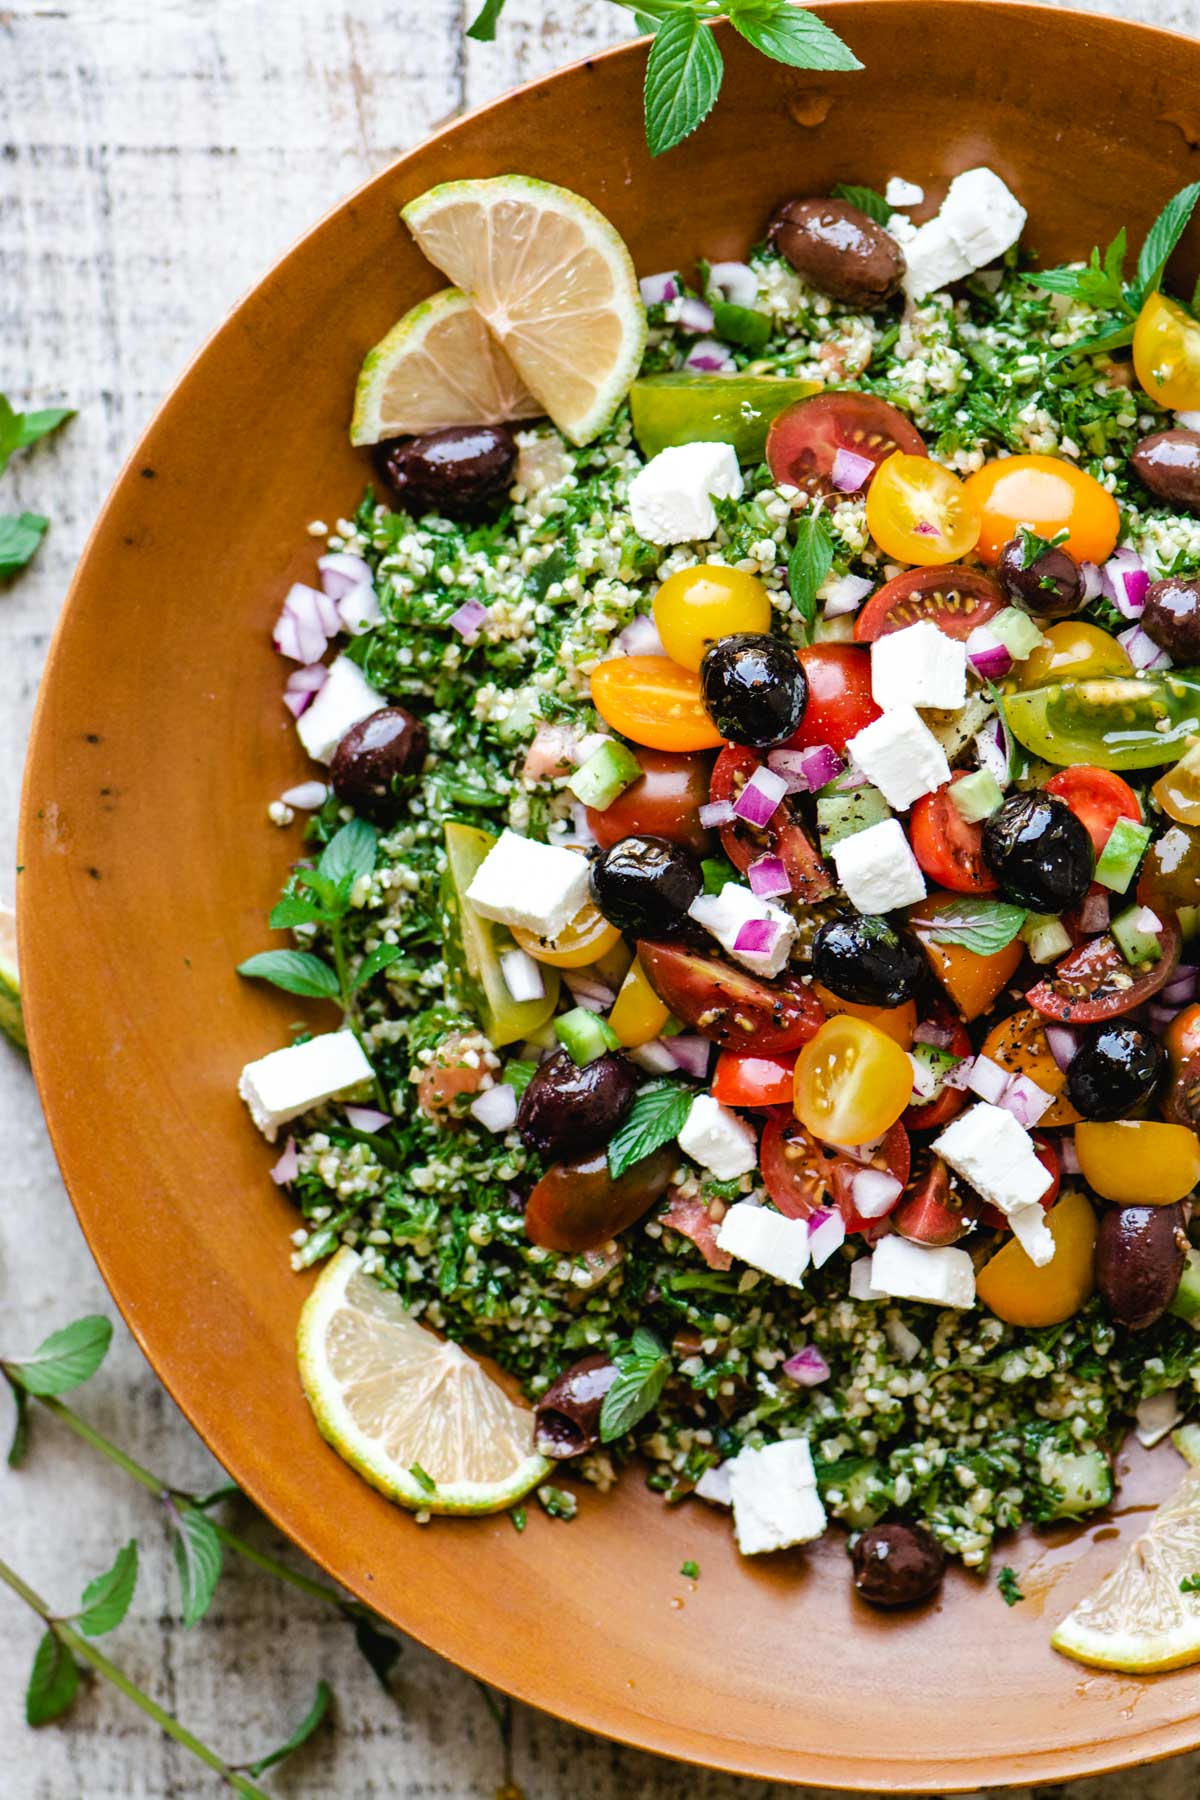 tabbouleh salad with colorful toppings